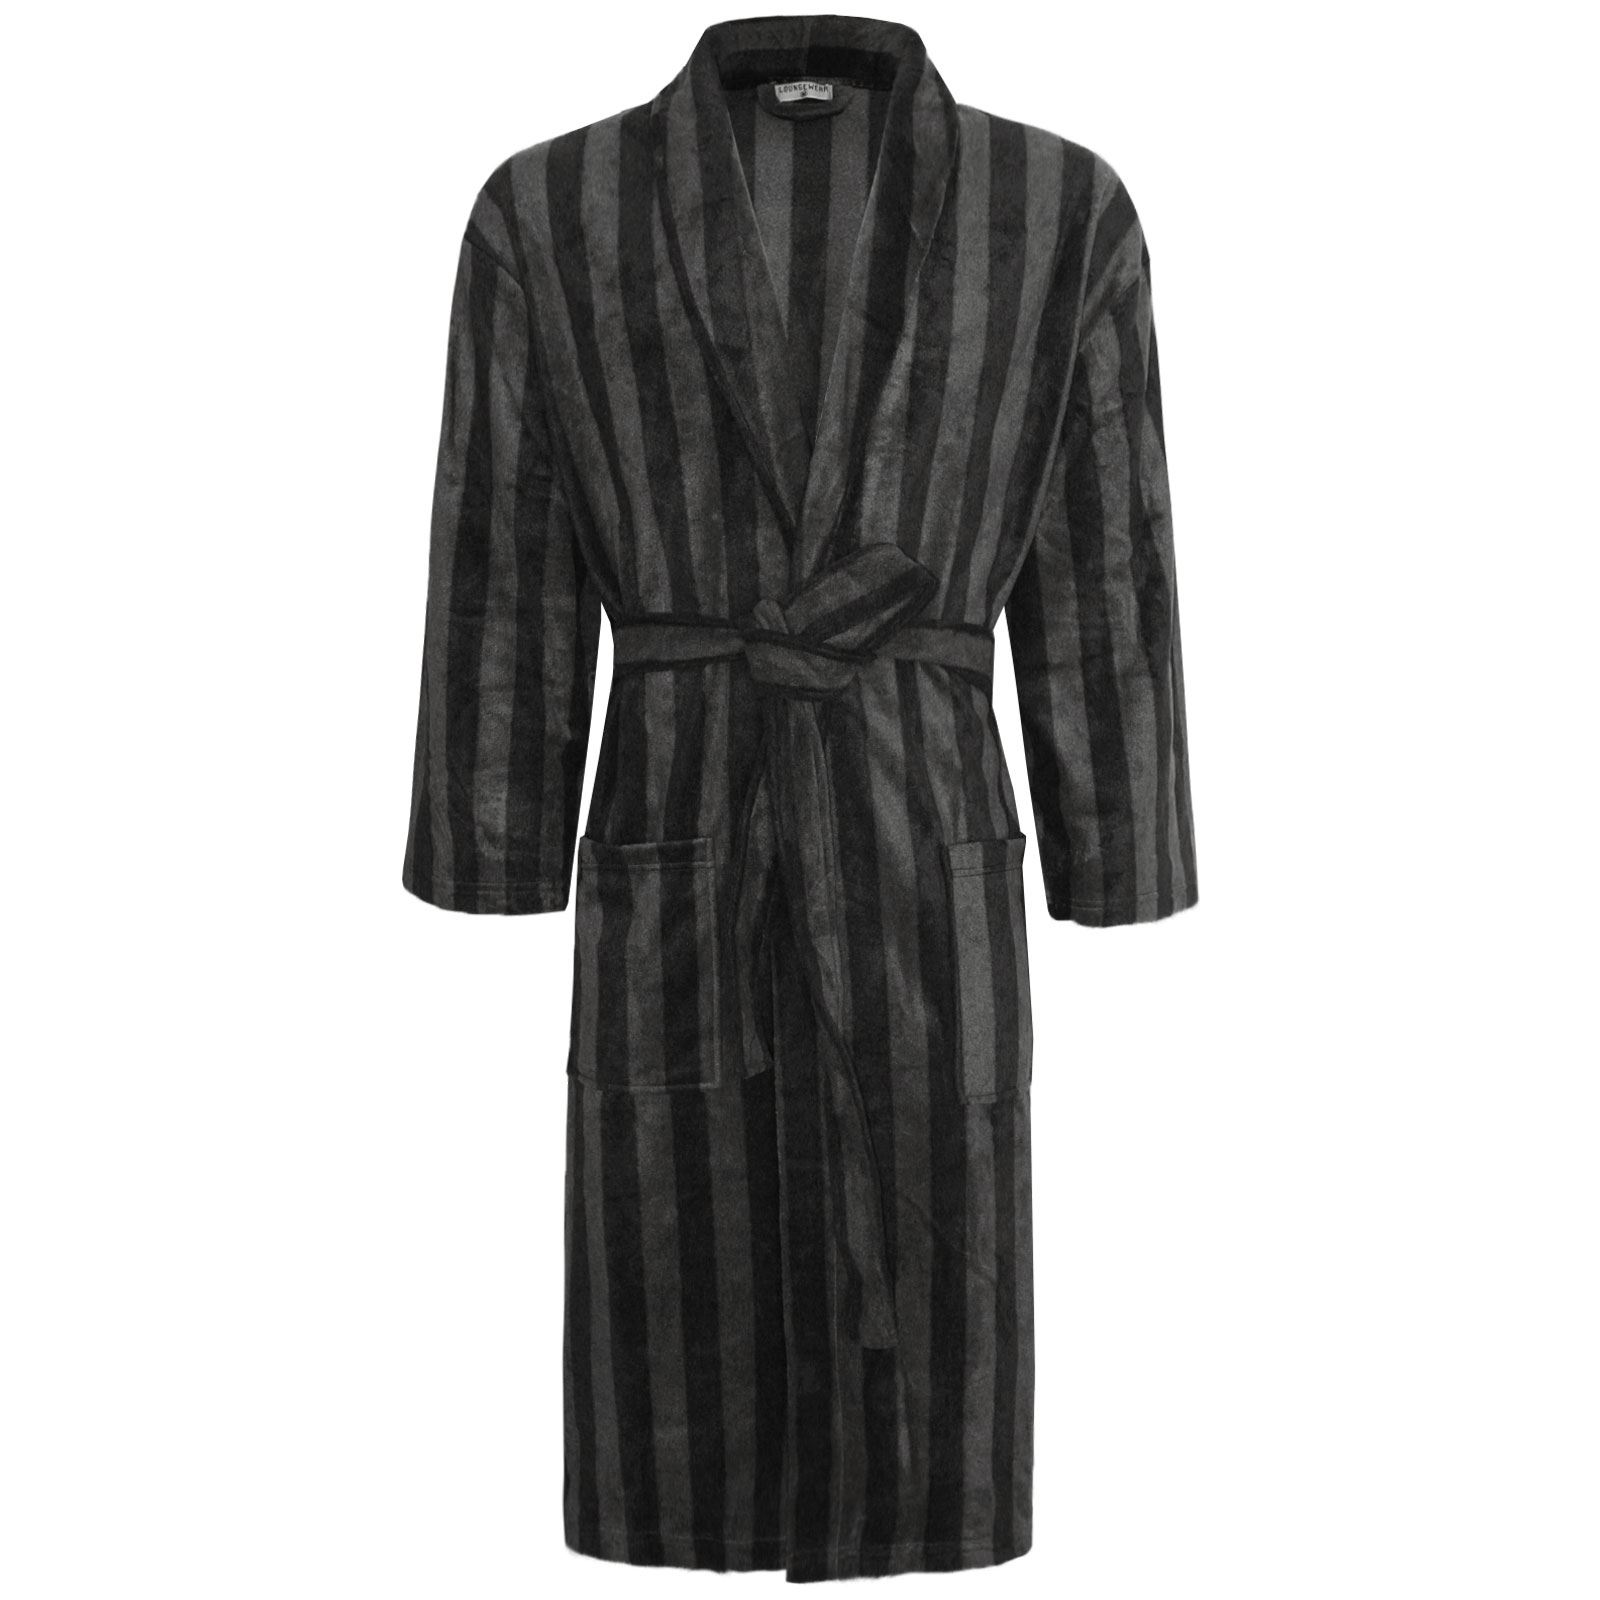 Hooded Fleece Turkish Bath Robe for WomenThis hooded microfiber robe is an ideal fit for customers looking for comfort and softnes s in a women's robe. Cozy and warm, it is perfect for lounging at home, walking your dog in rain, getting in and out of your hot tub or taking an afternoon nap.